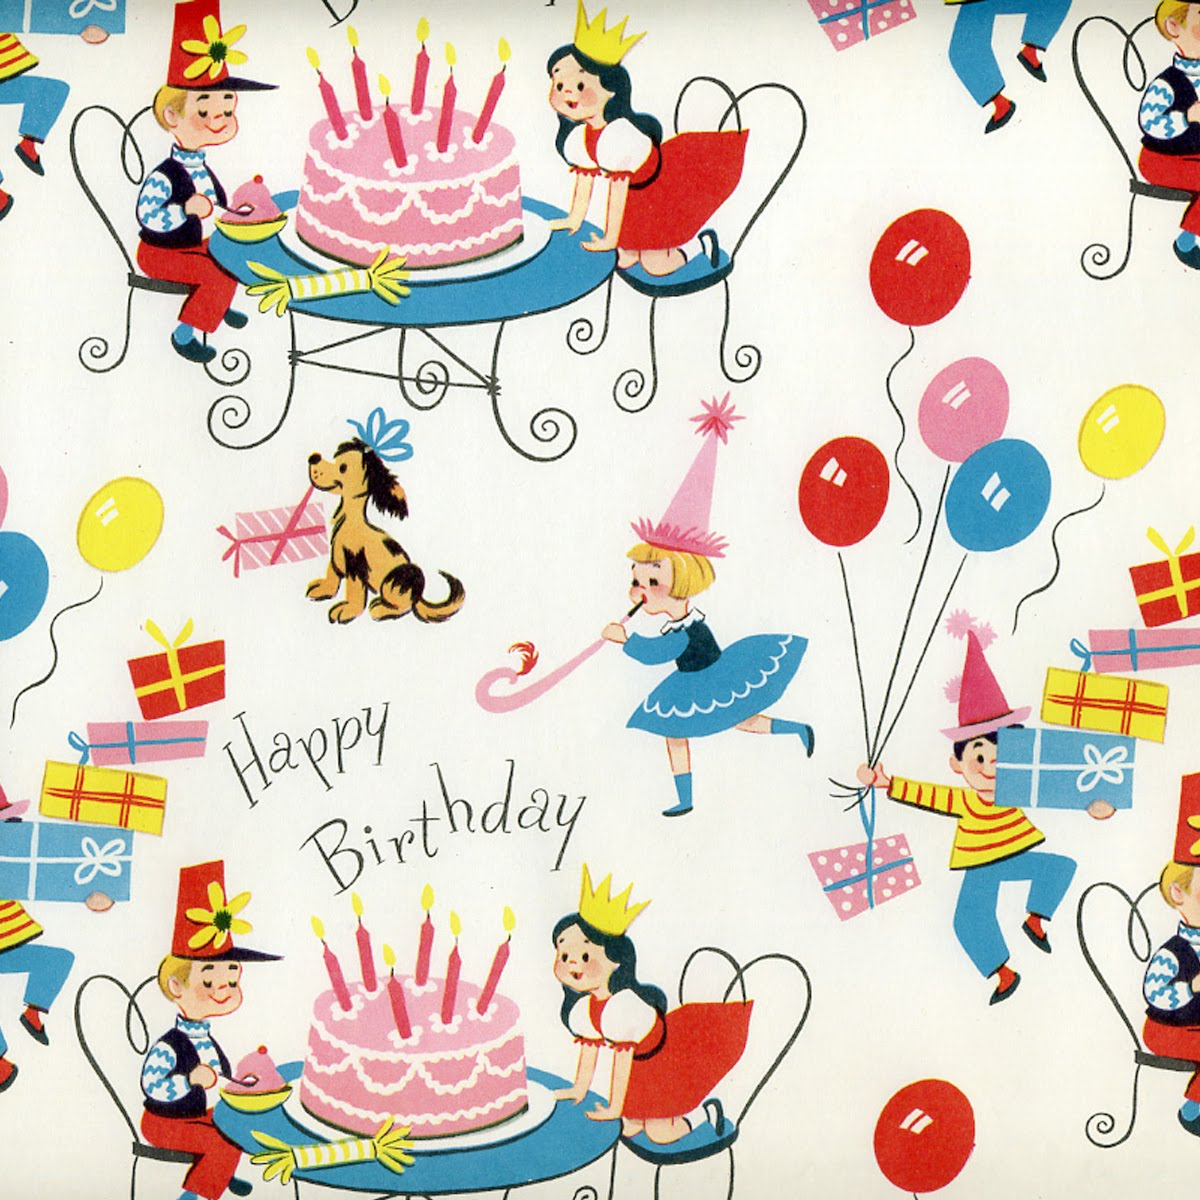 Tool Wrapping Paper Vintage Wrapping Paper